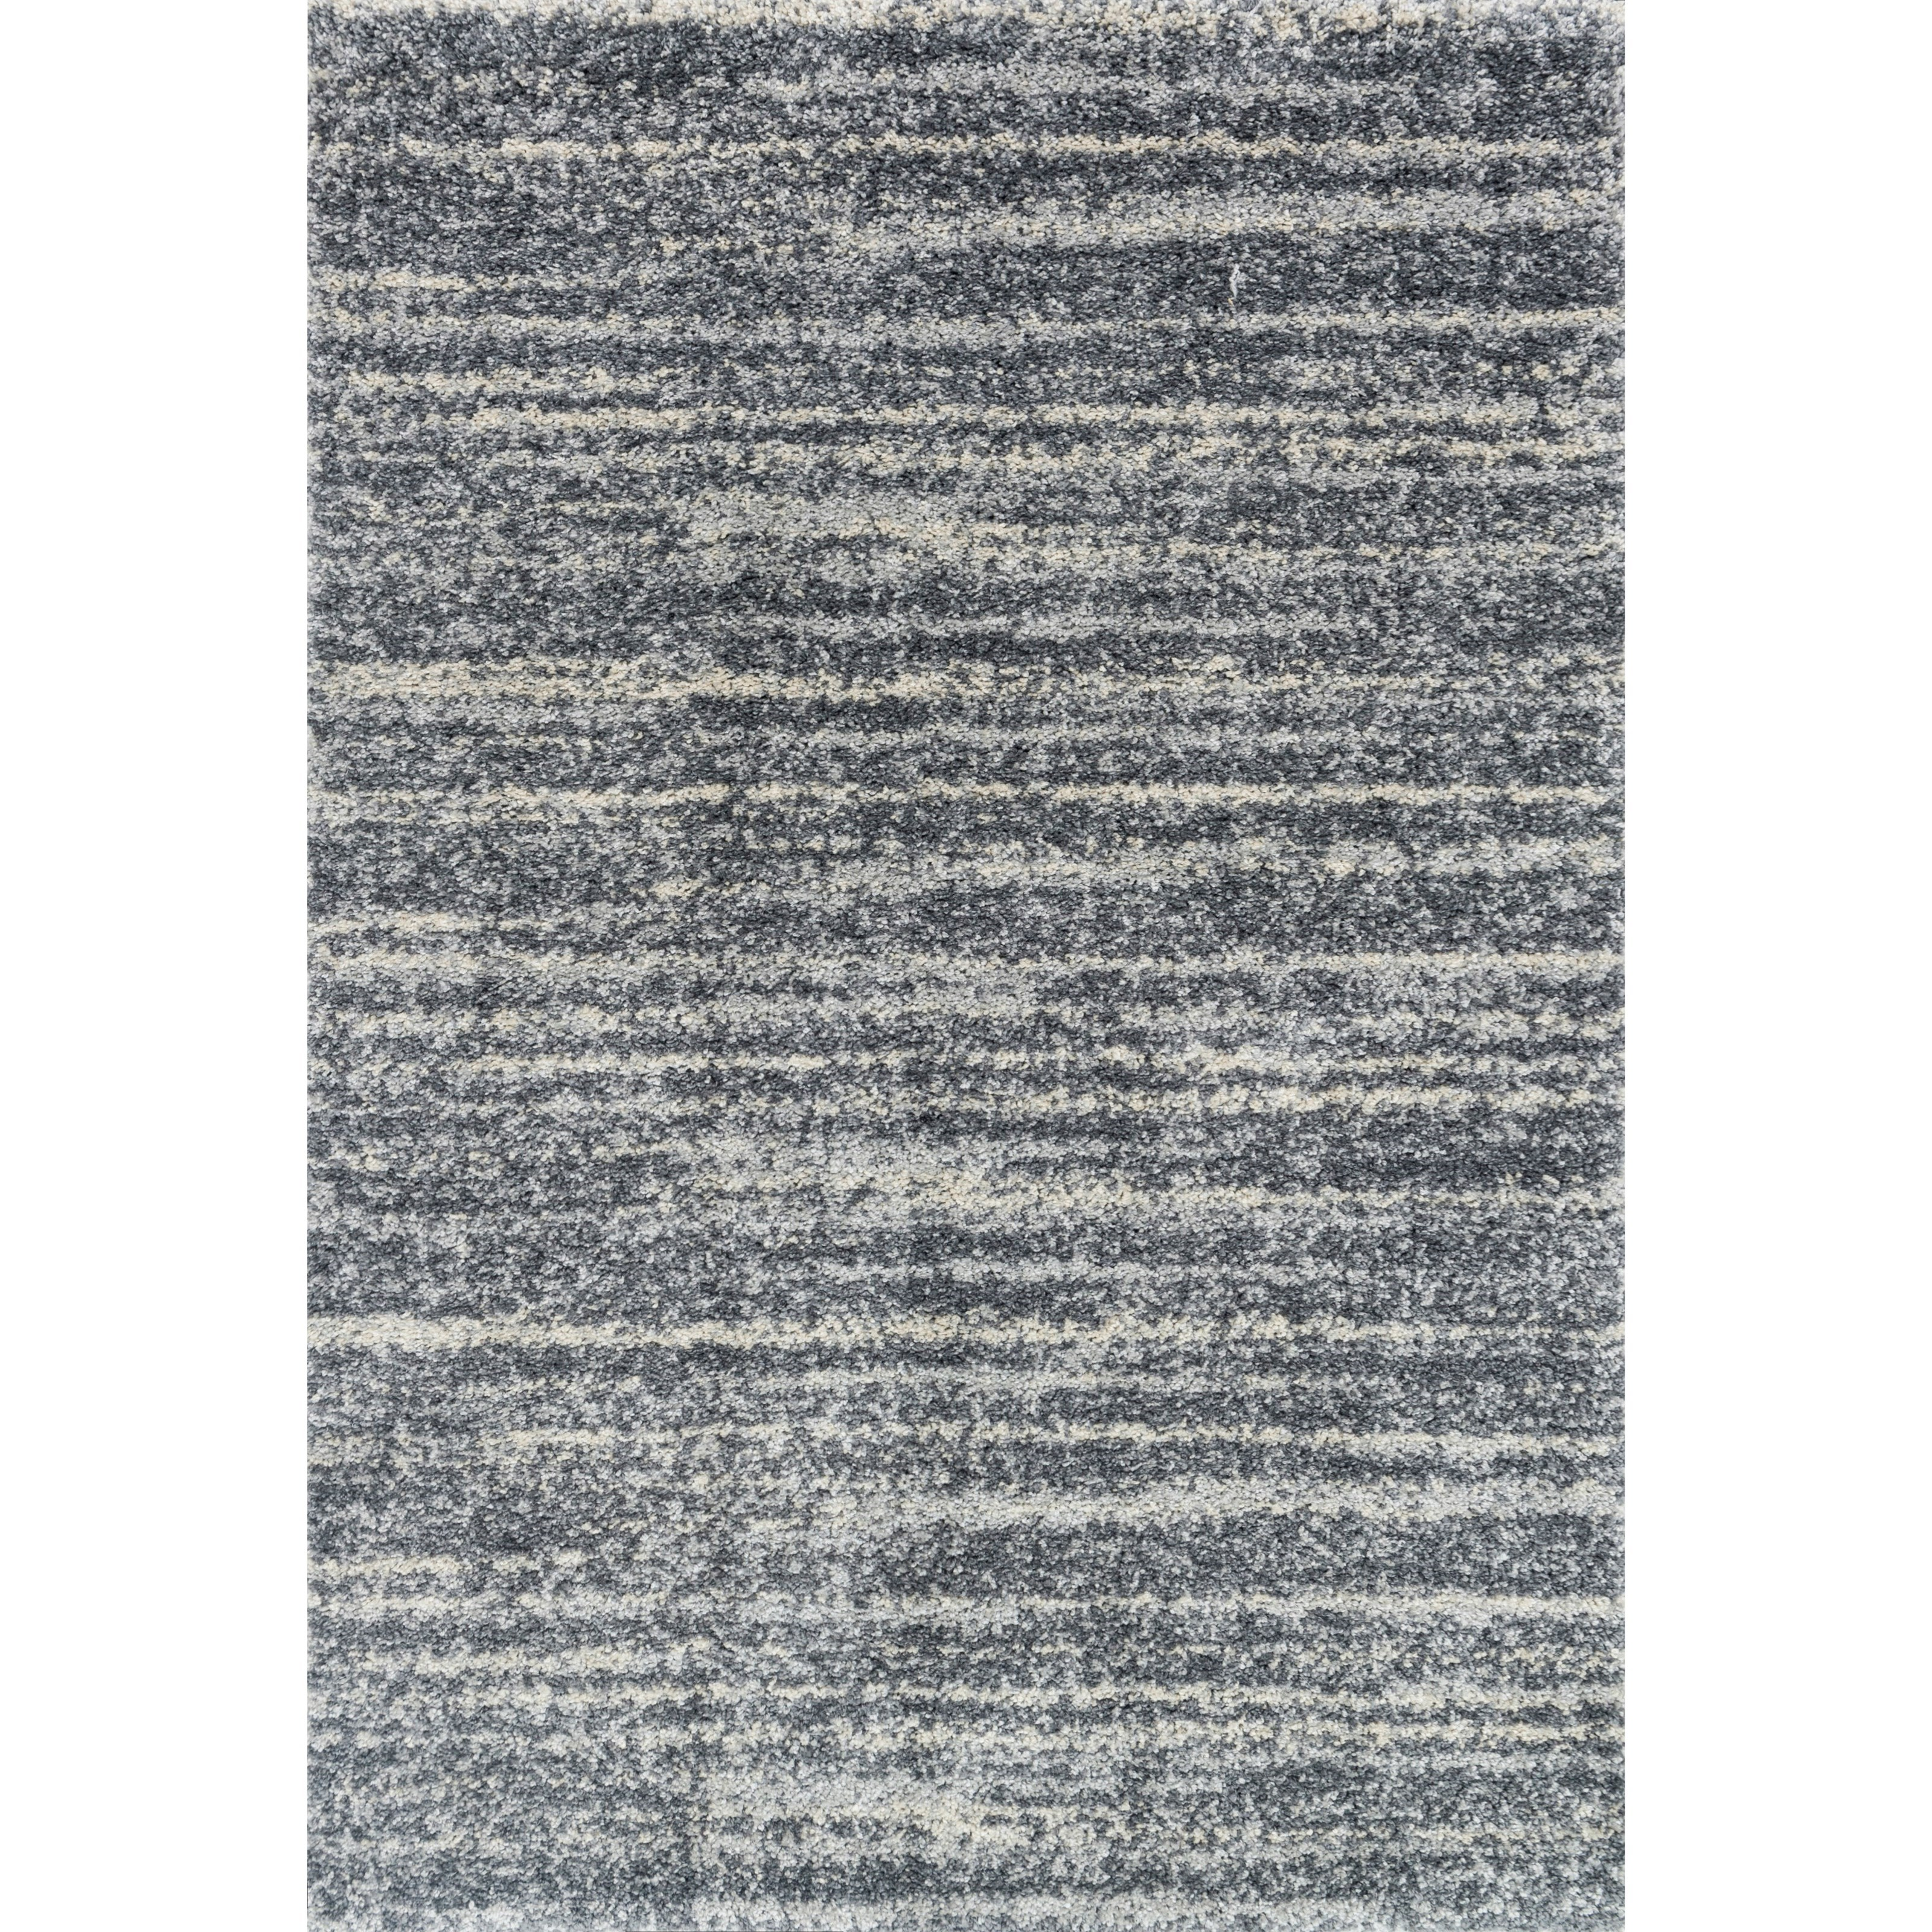 """Quincy 8'10"""" x 12' Granite Rug by Loloi Rugs at Virginia Furniture Market"""